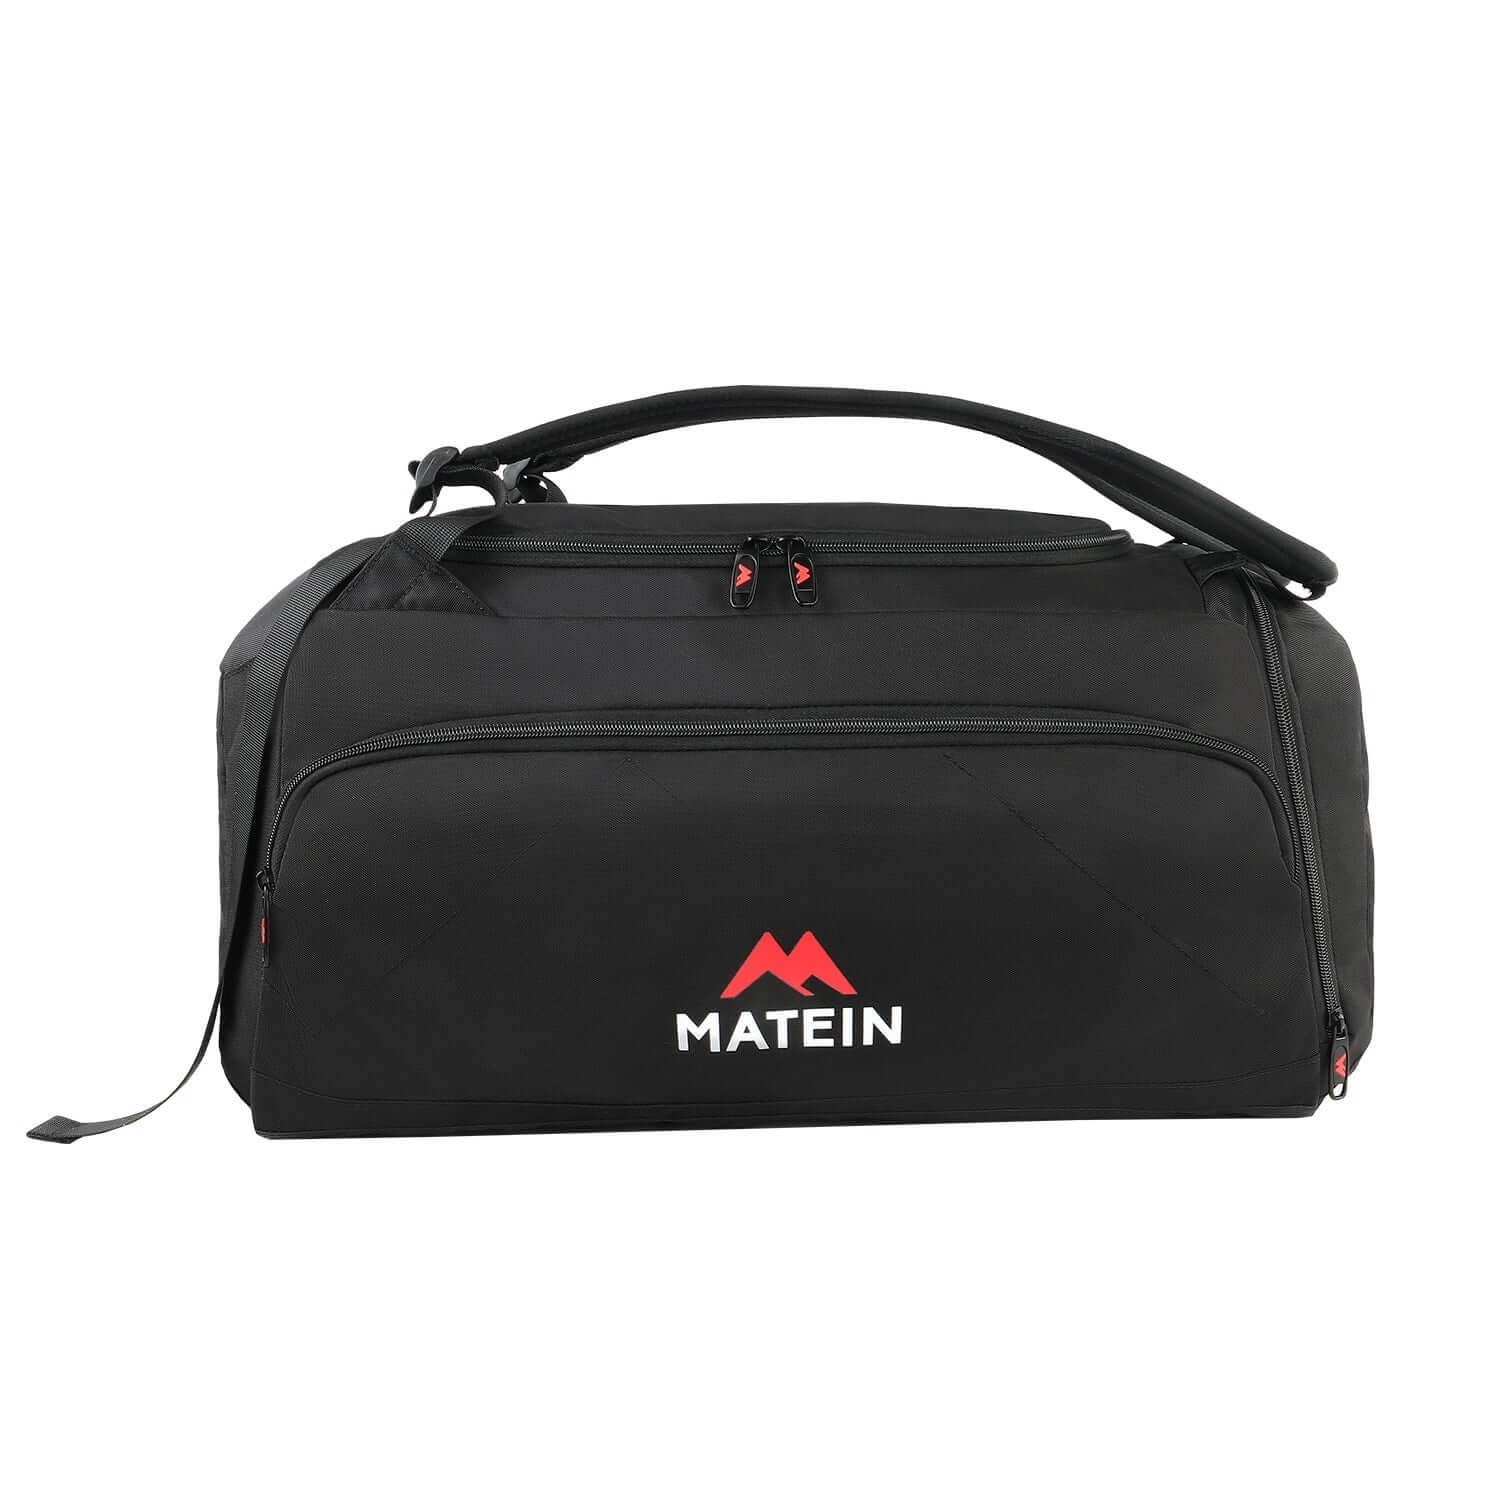 Matein Duffle Bag - travel laptop backpack